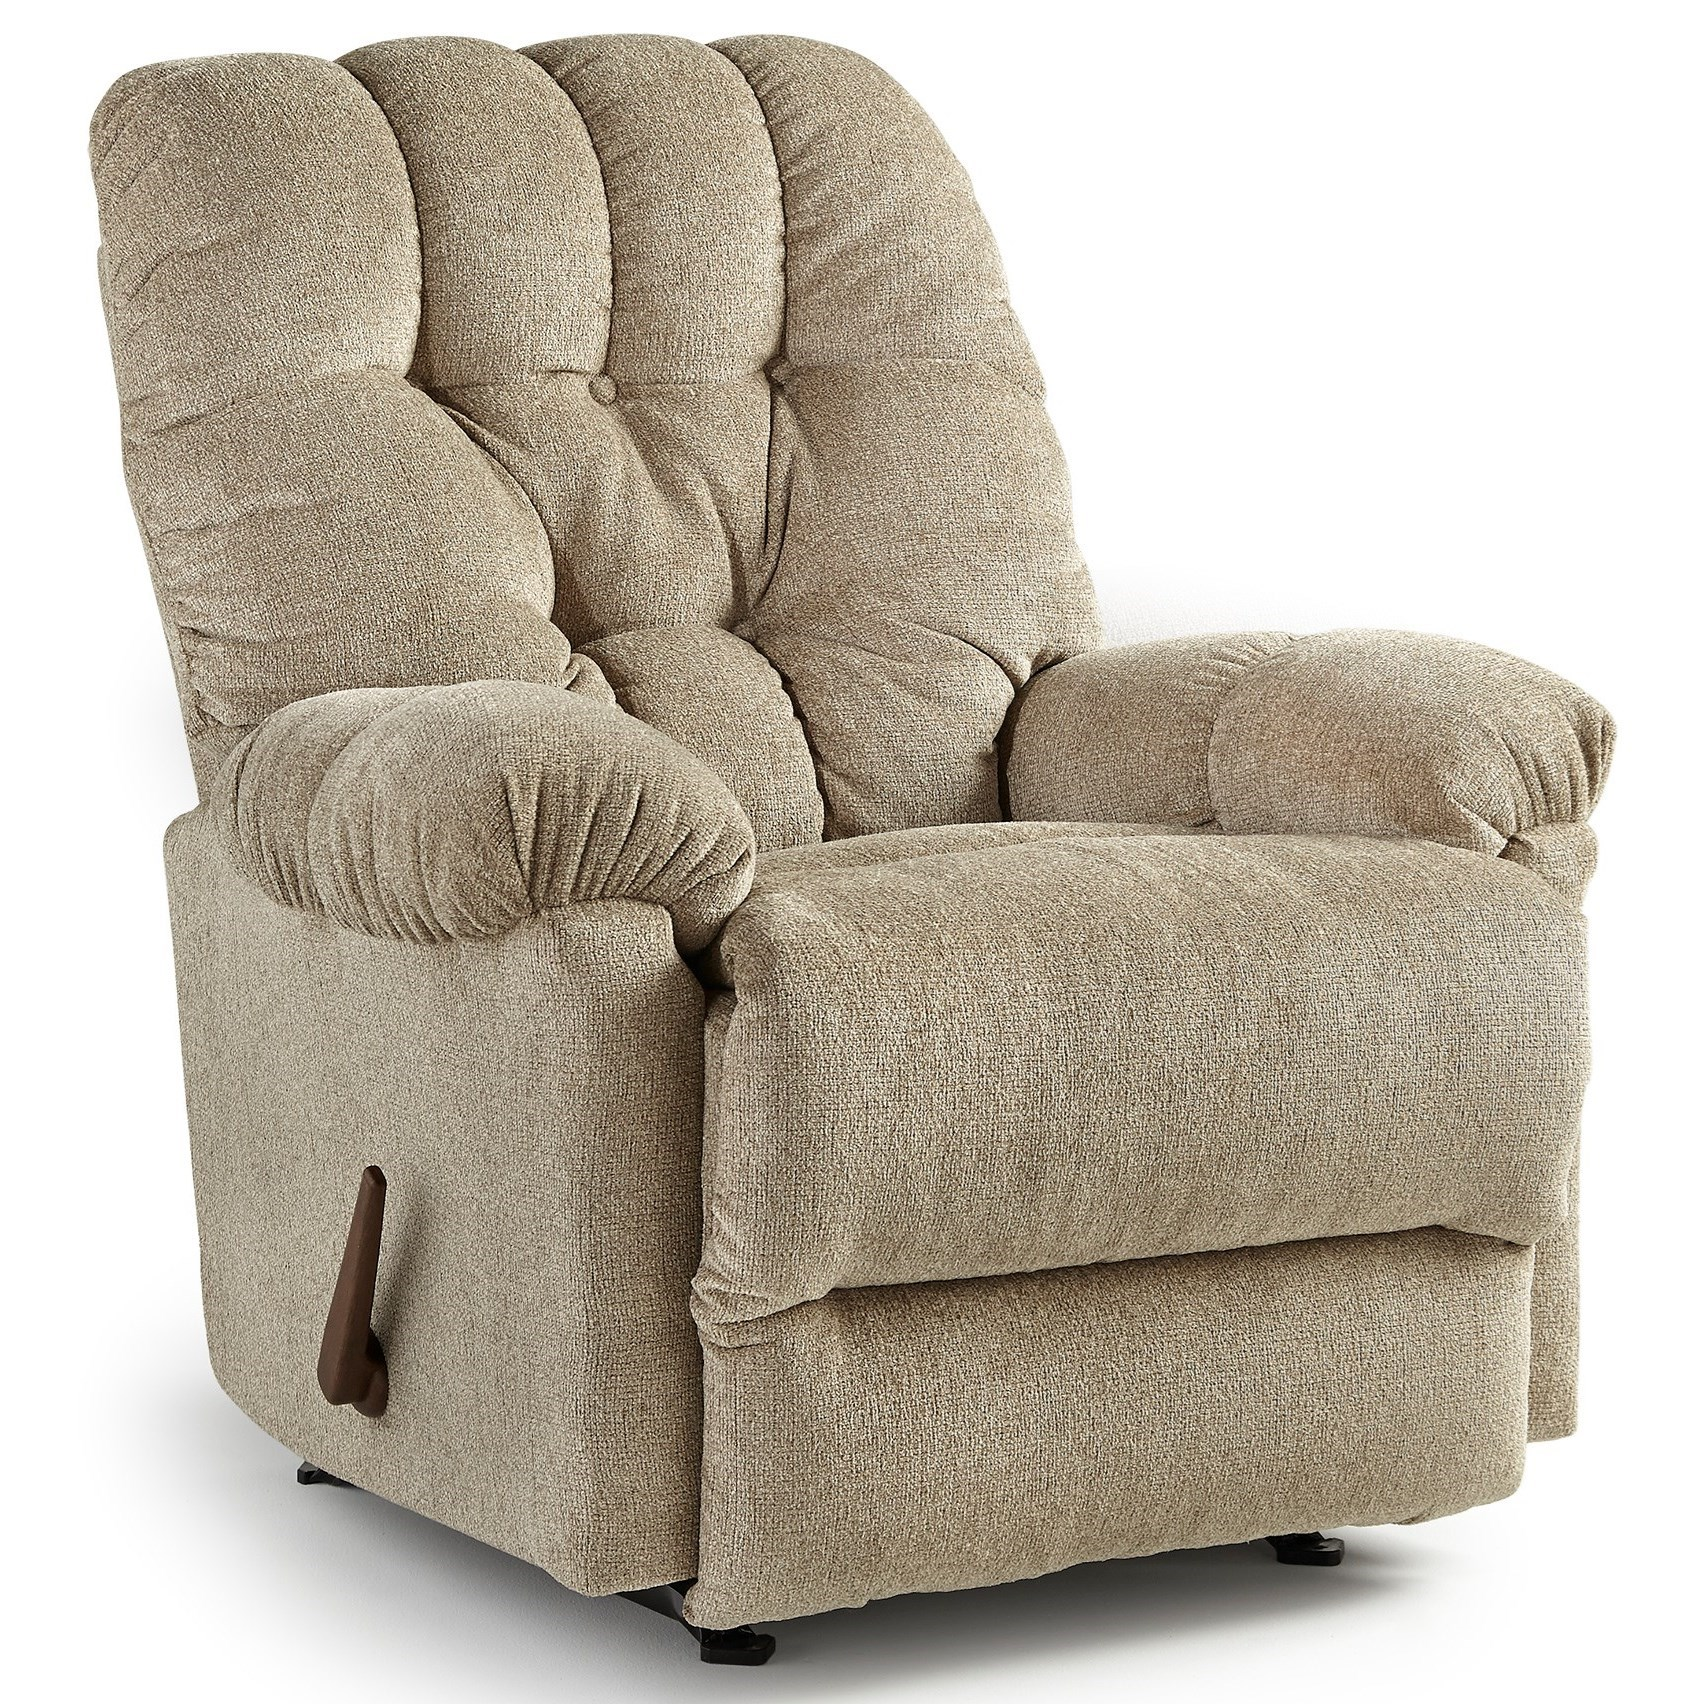 Raider Raider Power Wallhugger Recliner by Best Home Furnishings at VanDrie Home Furnishings